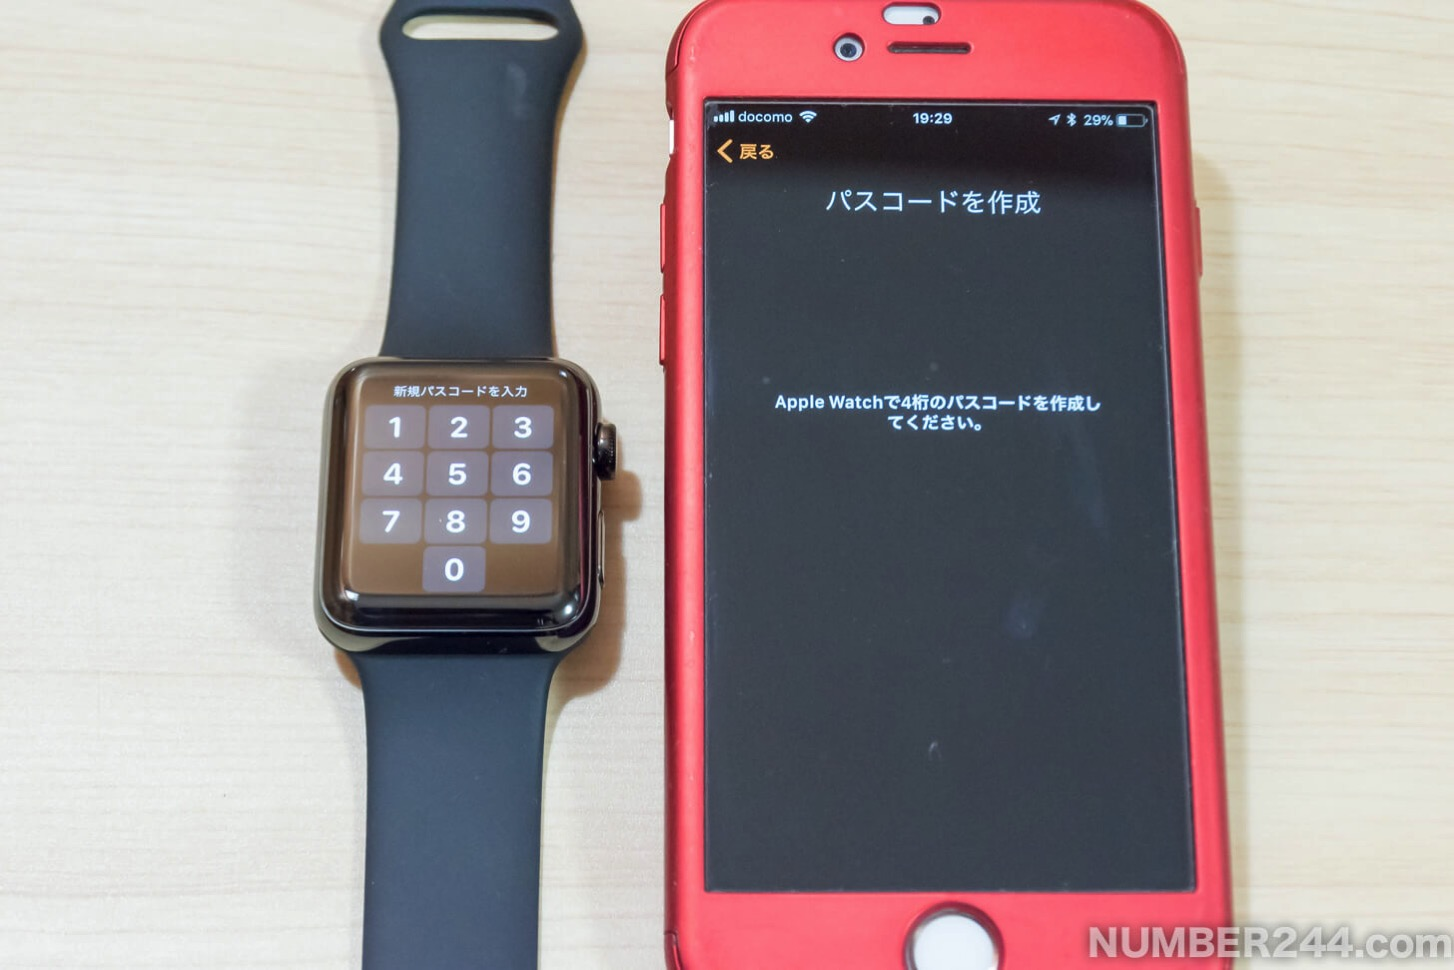 Initial setting of Apple Watch 13